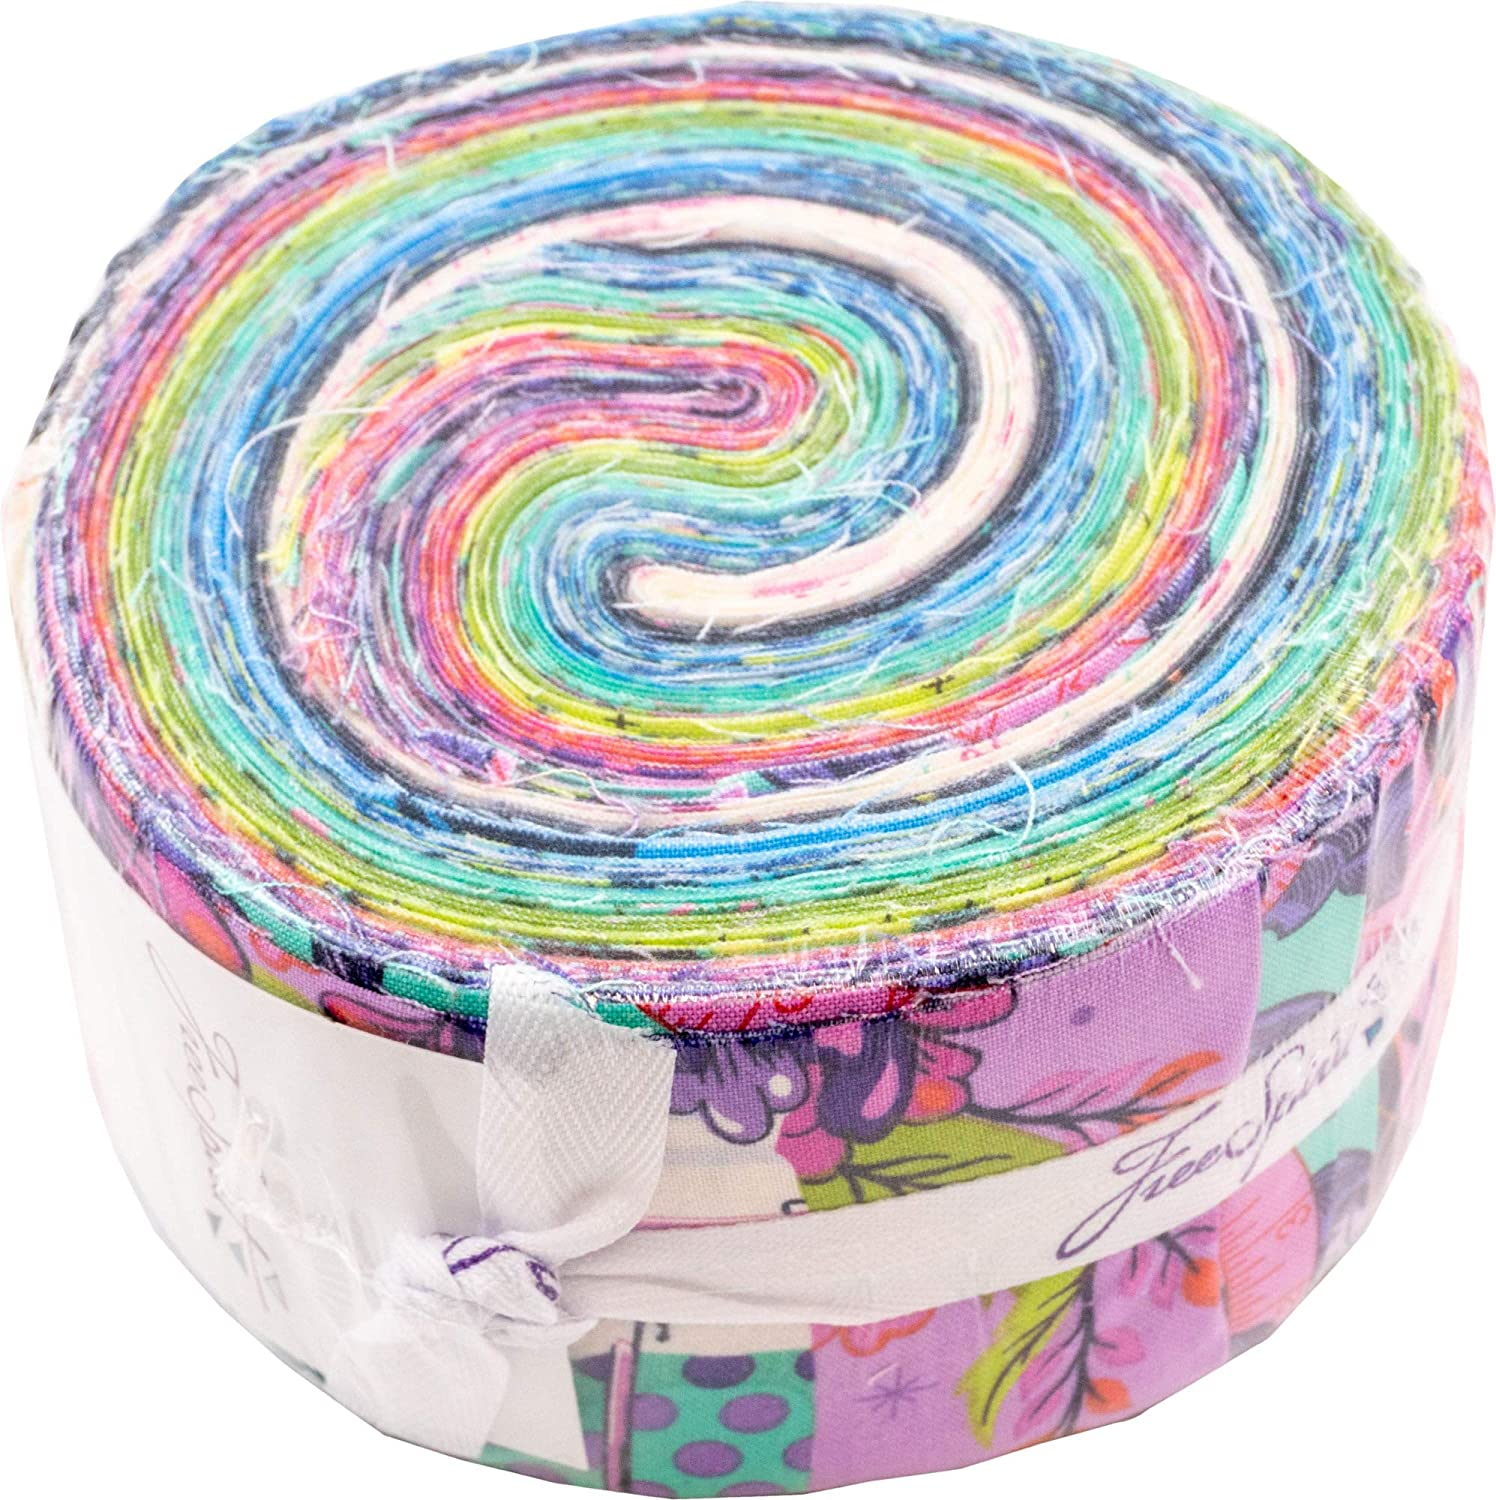 Online limited product FreeSpirit Homemade by Tula Pink 35% OFF Roll Design pc. 40